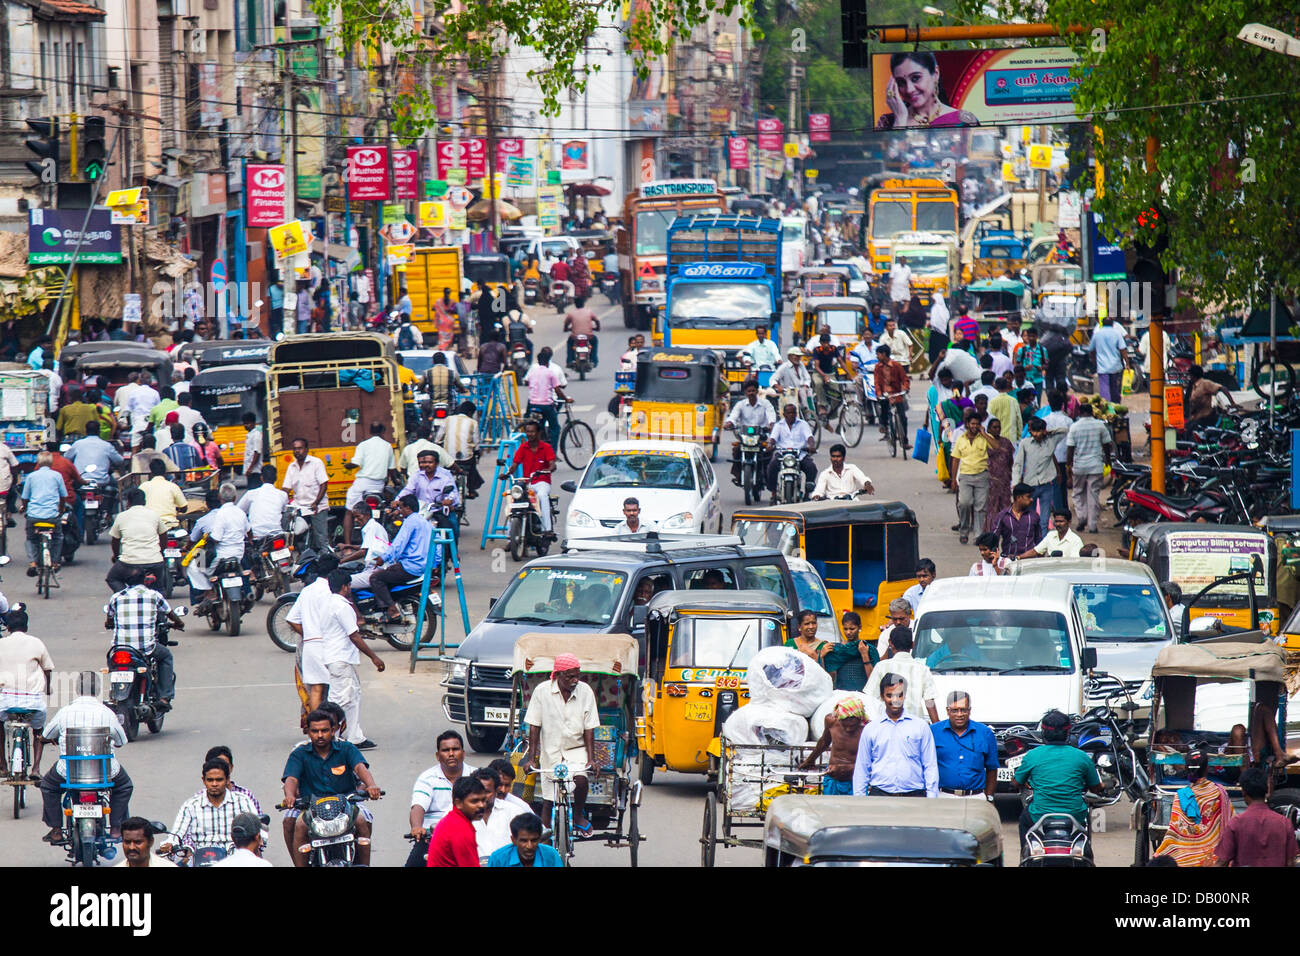 Busy street in Madurai, India - Stock Image